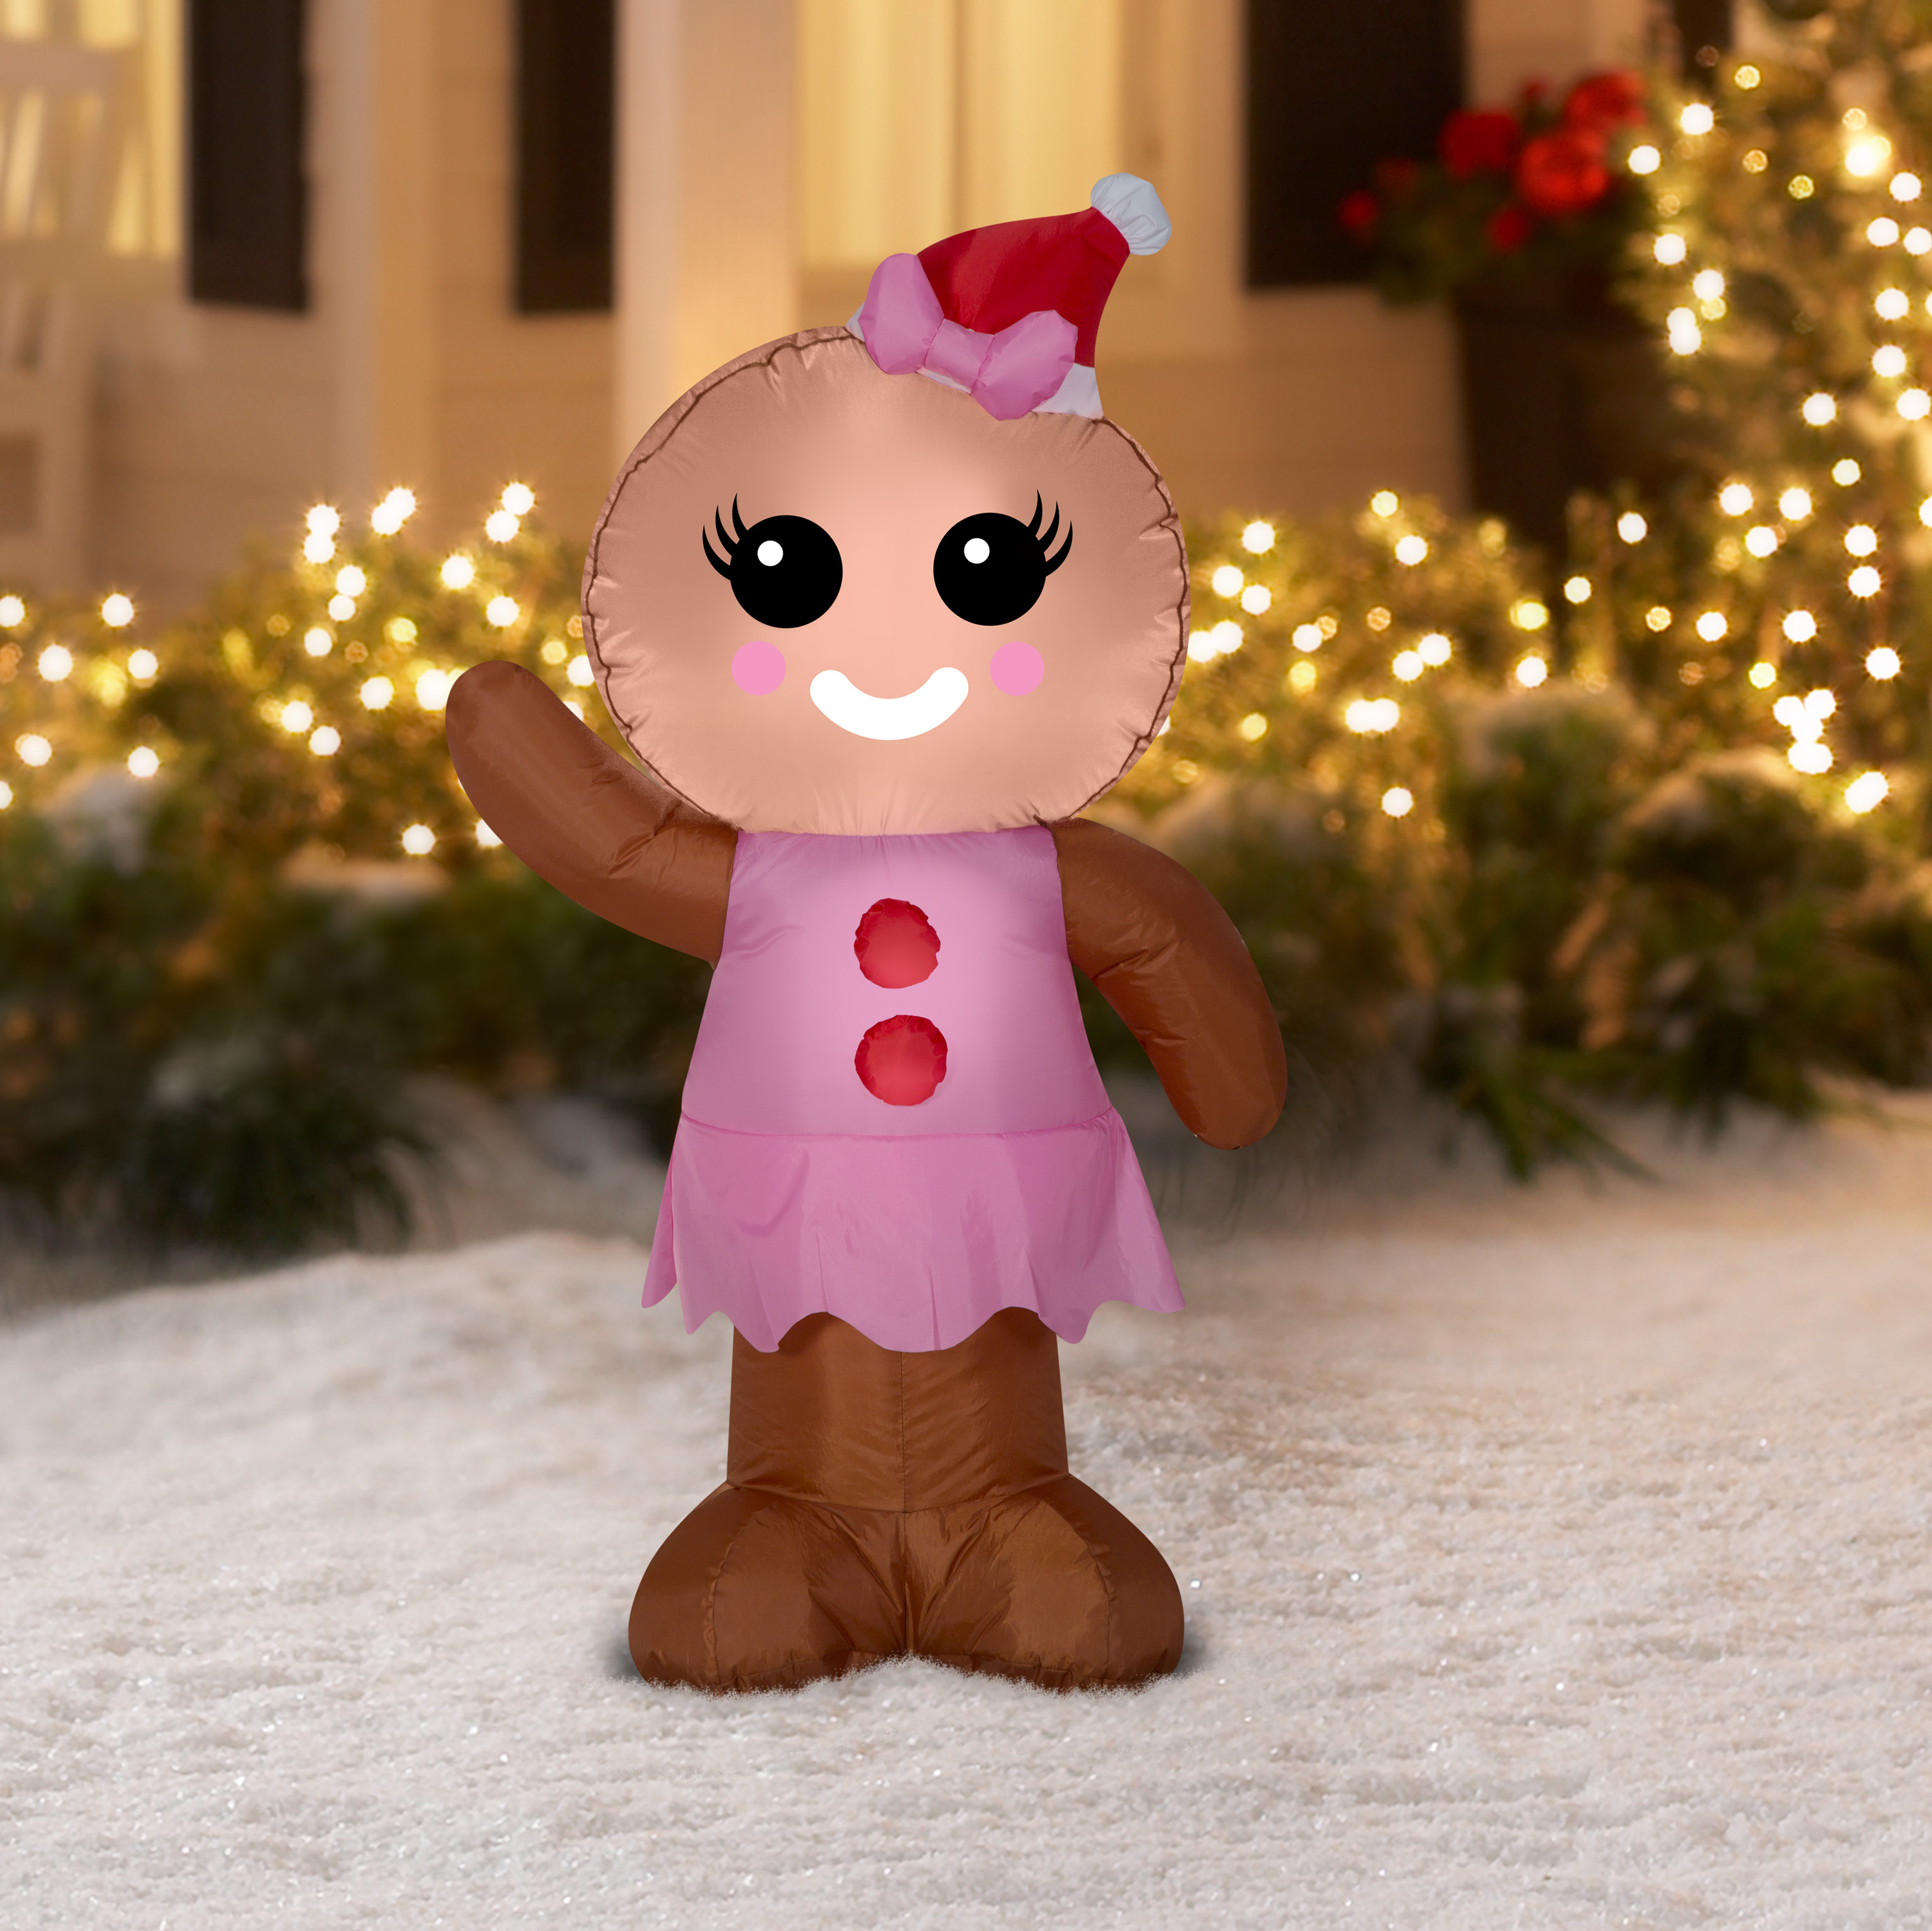 inflatable gingerbread woman 4 ft pink christmas decoration indoor outdoor - Gingerbread Outdoor Christmas Decorations